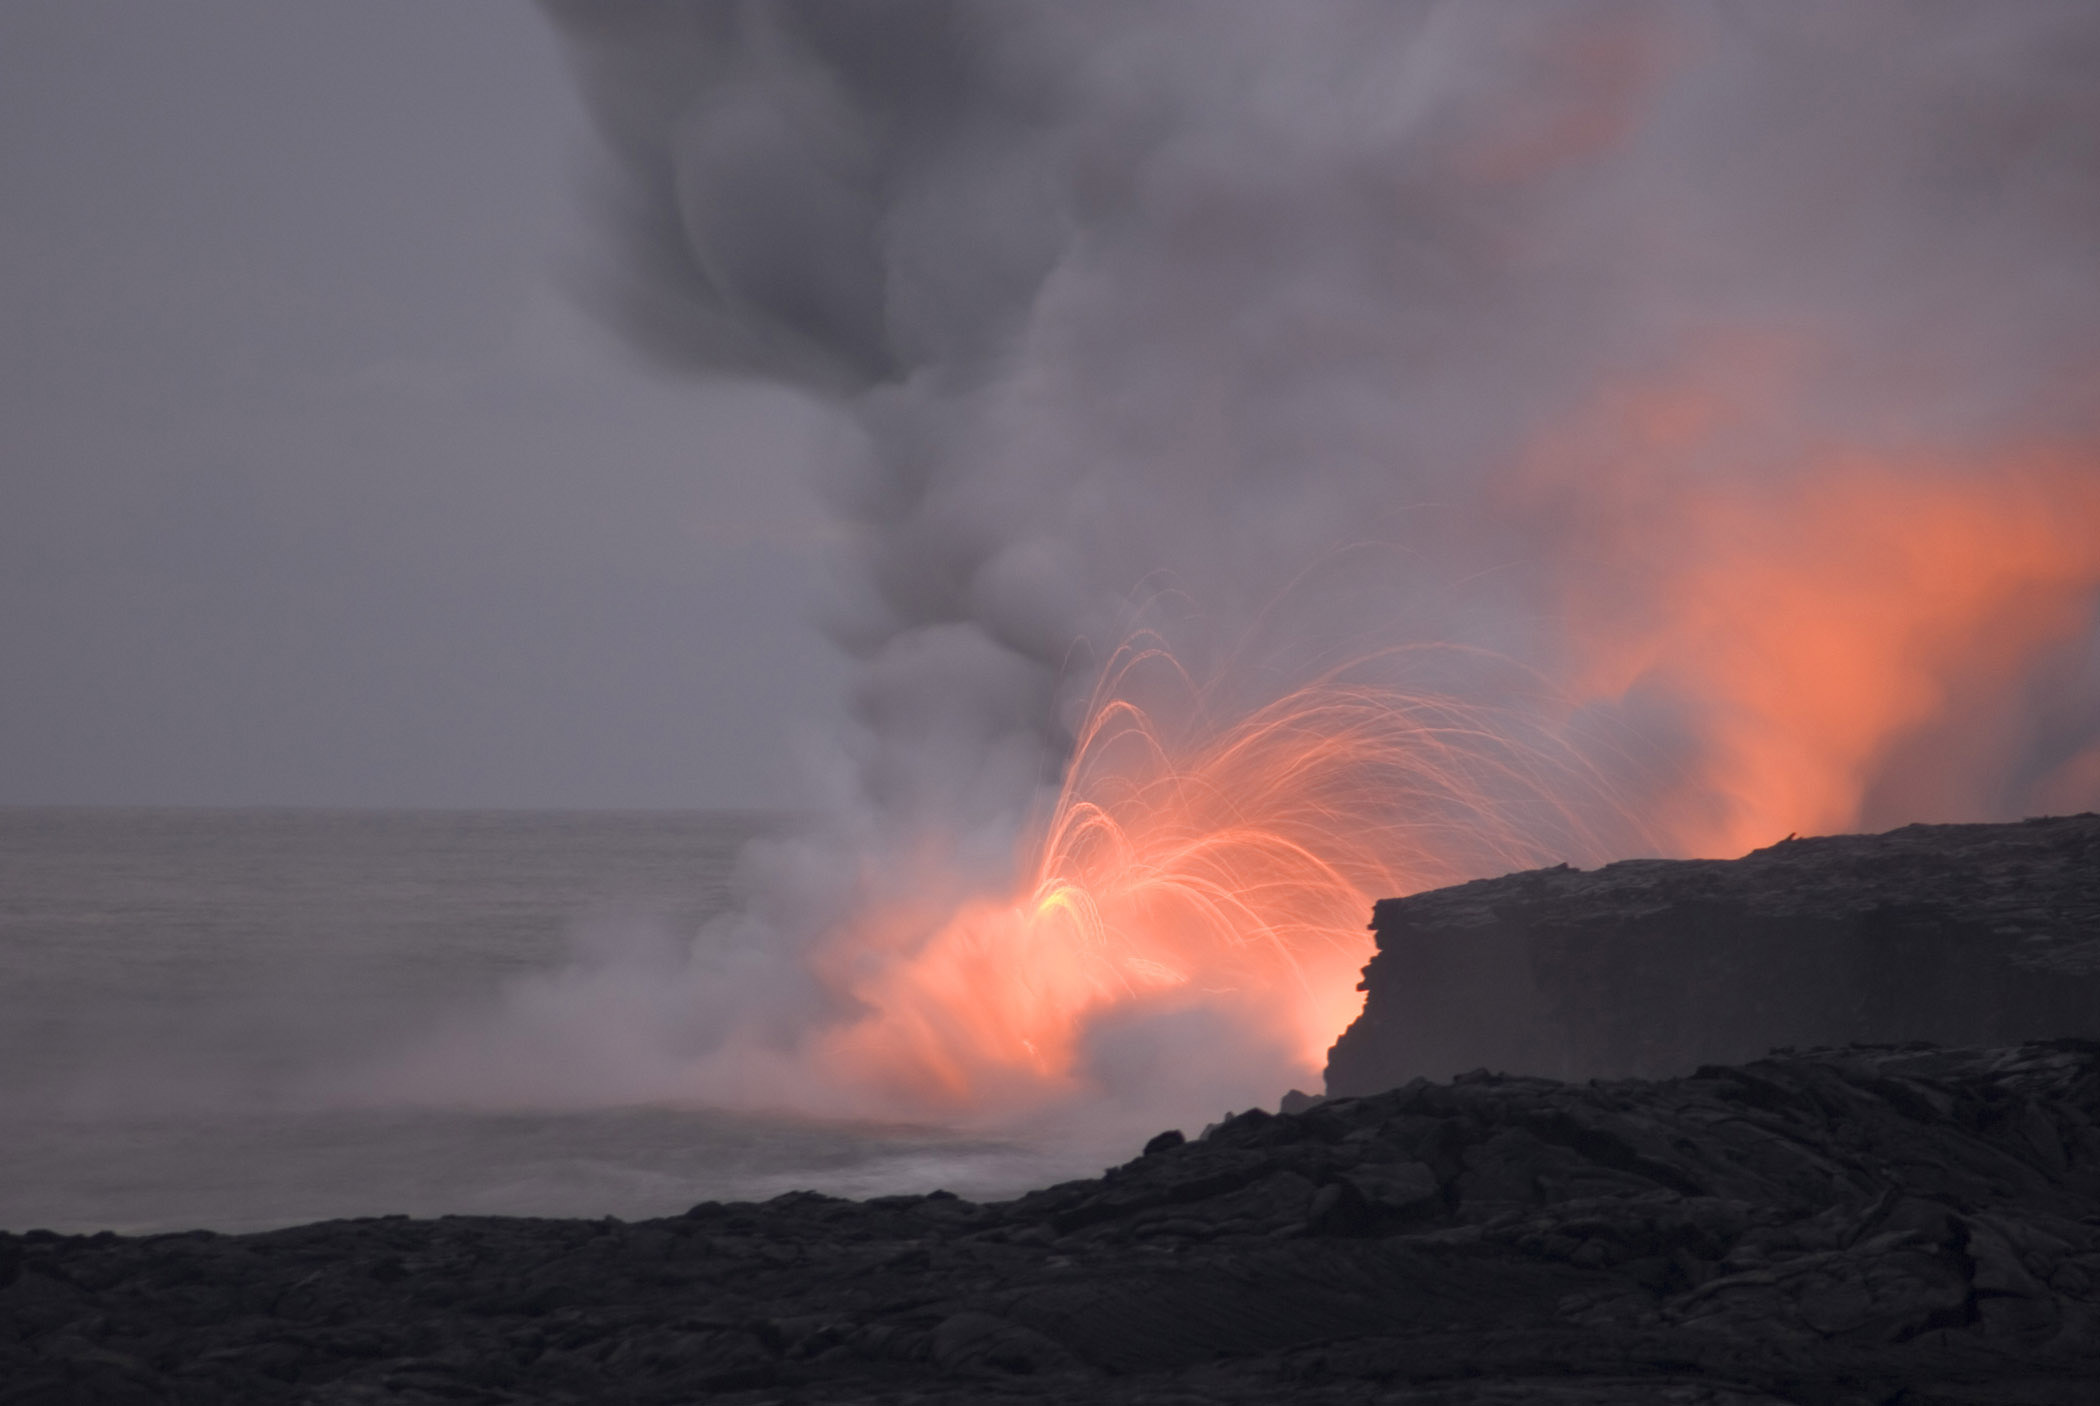 Red hot lava exploding from a volcanic fissure in an eruption on an active volcano on Hawaii, USA